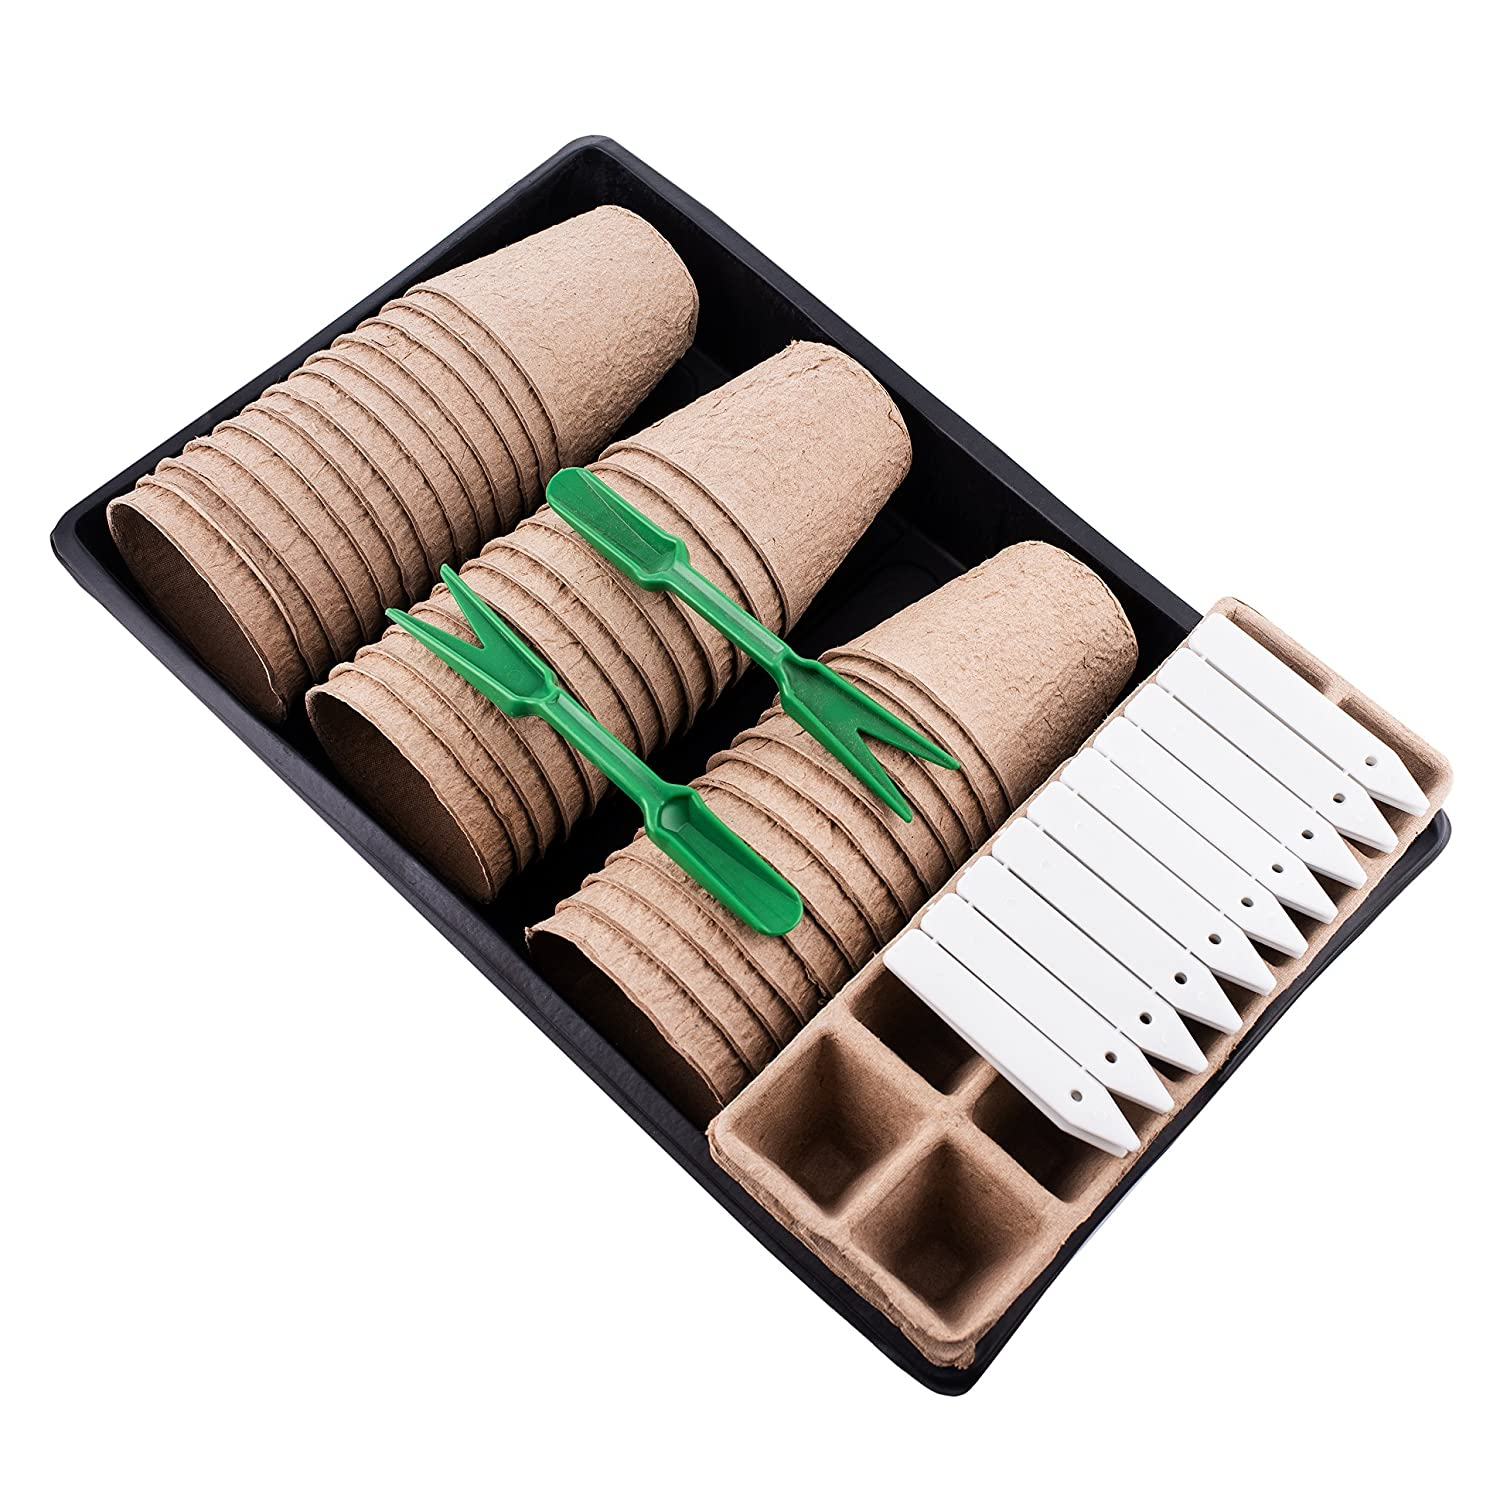 Plant Starter Kit | Everything You Need | Biodegradable Peat Pots, Peat Seed Starter Trays, PVC Plant Growing Trays, Gardening Tools & More! | Perfect Plant Cultivation Set for Gardeners or Classrooms